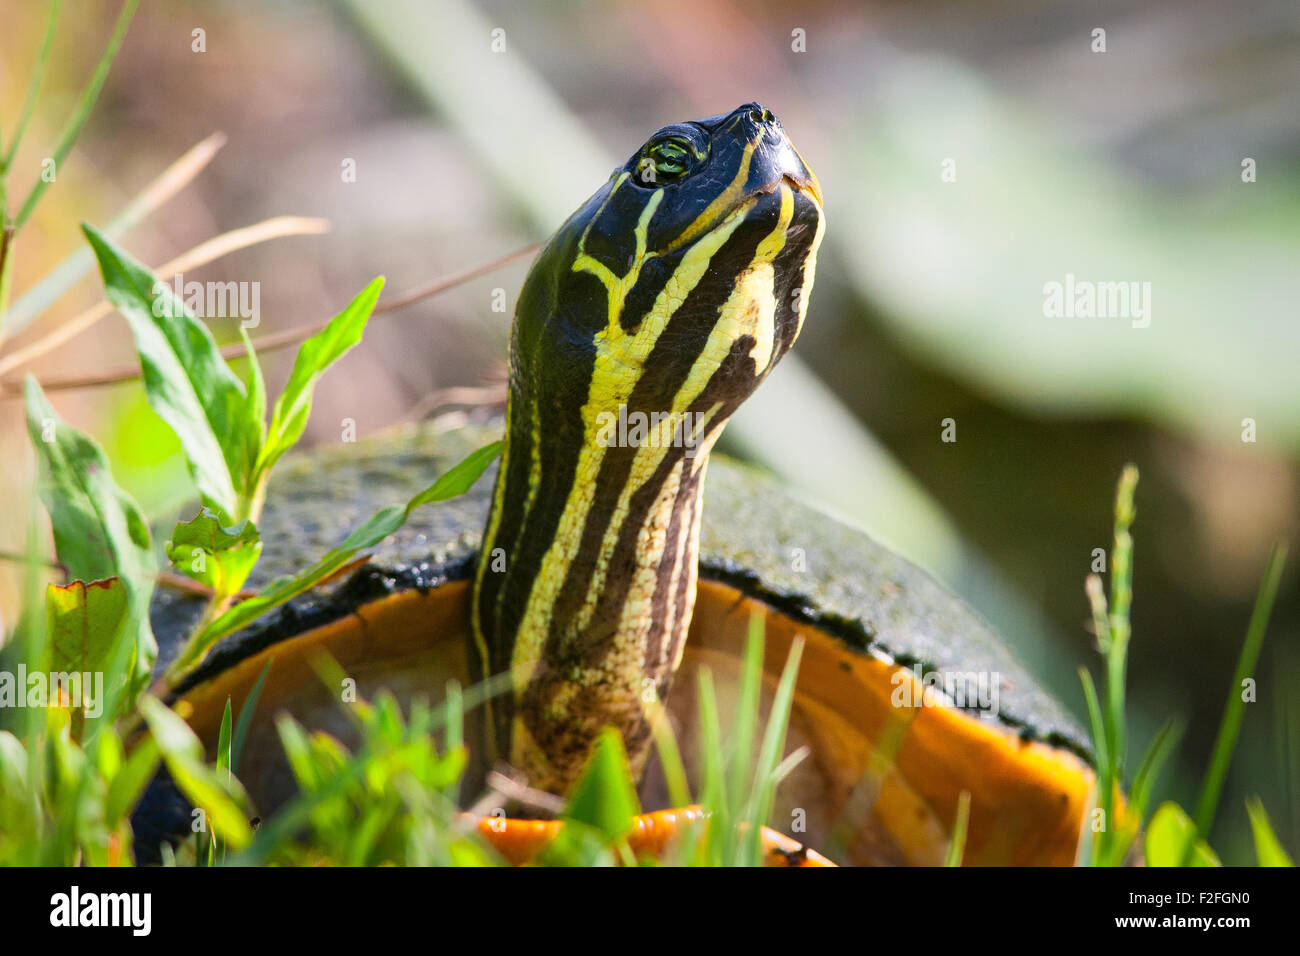 Close-up of a Florida Redbelly Turtle (Pseudemys Nelsoni), Merritt Island, Titusville, Brevard County, Florida, Stock Photo